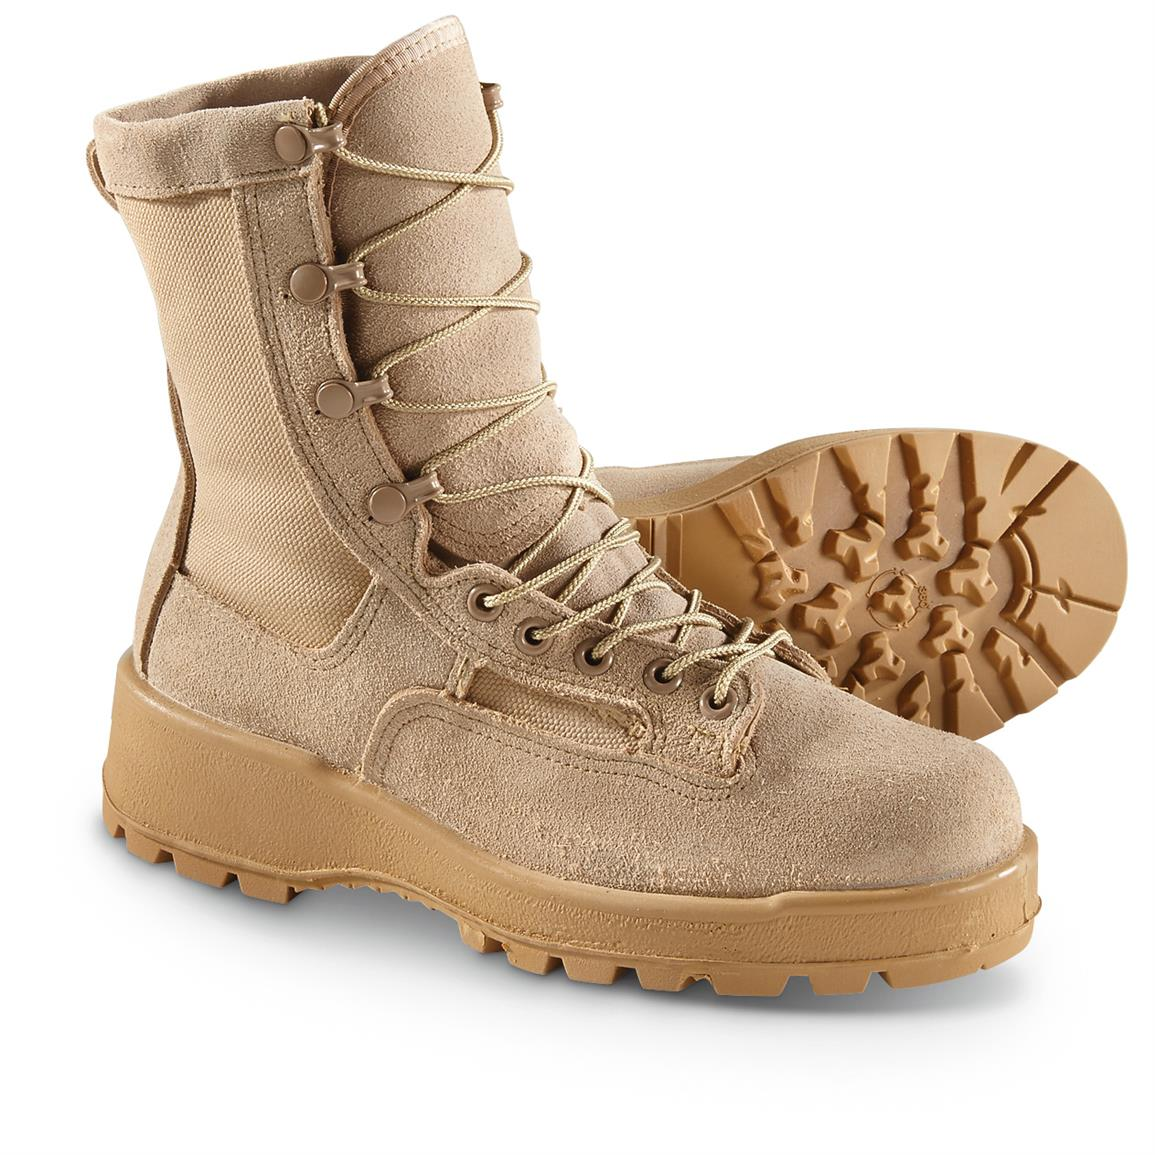 Men's U.S. Military Issue GORE-TEX Combat Boots, Waterproof, Altama